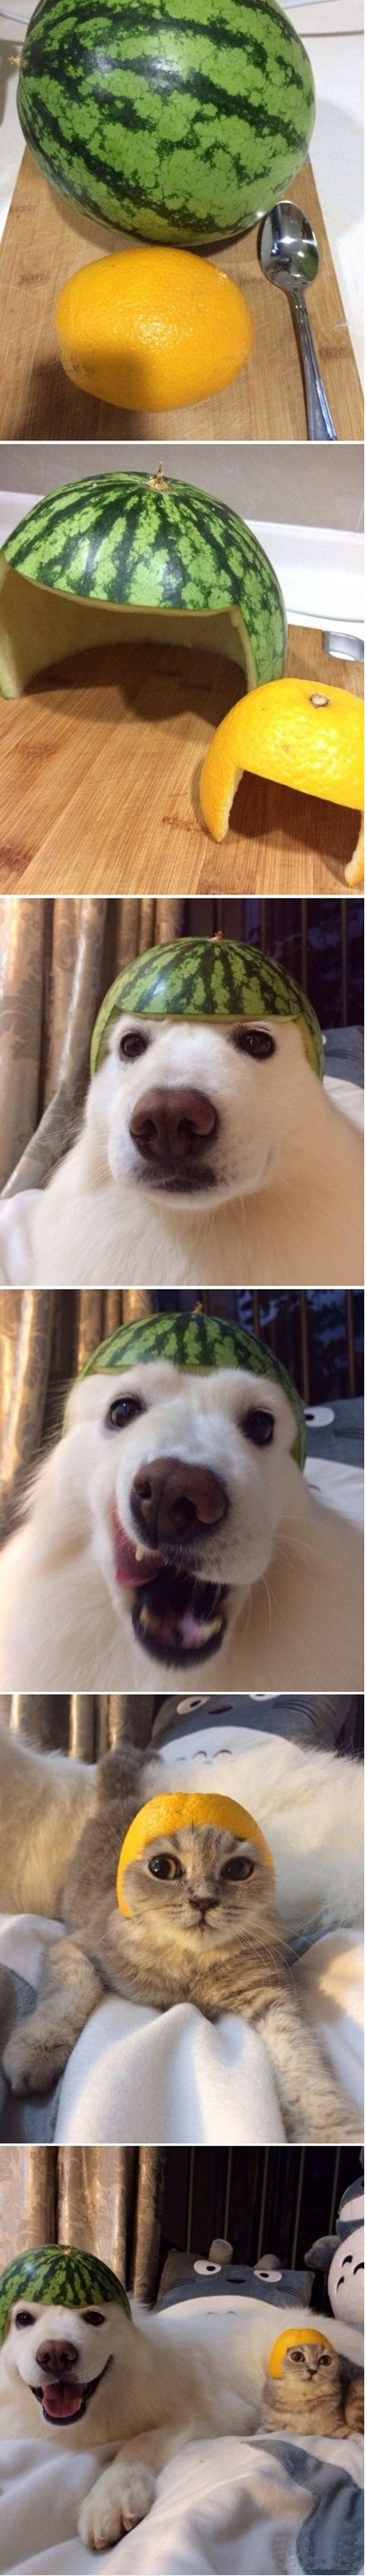 Melon collie and sour puss